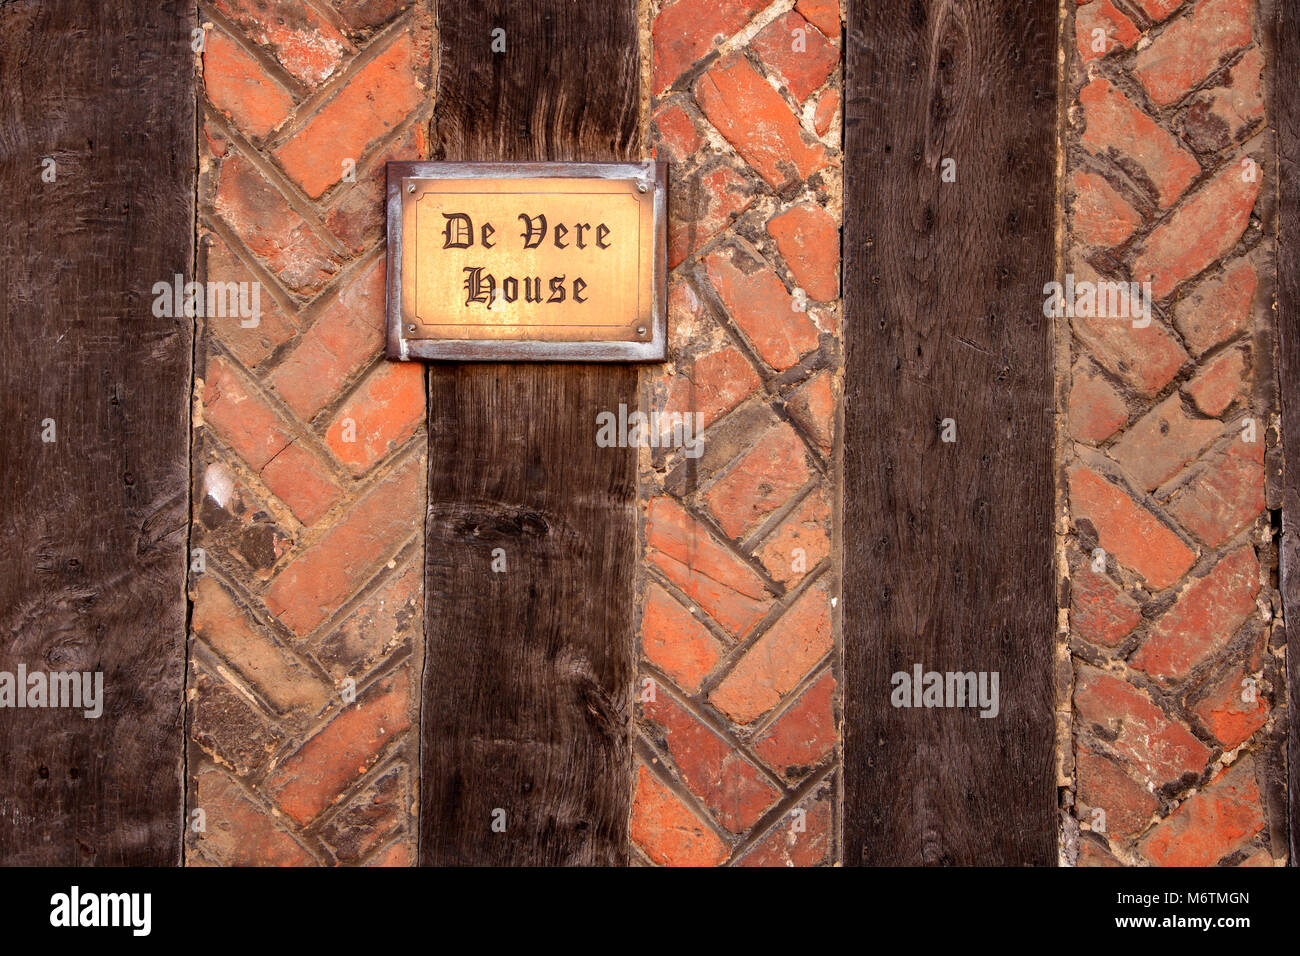 Tourist Information Sign, Lavenham village, Suffolk County, England, UK - Stock Image